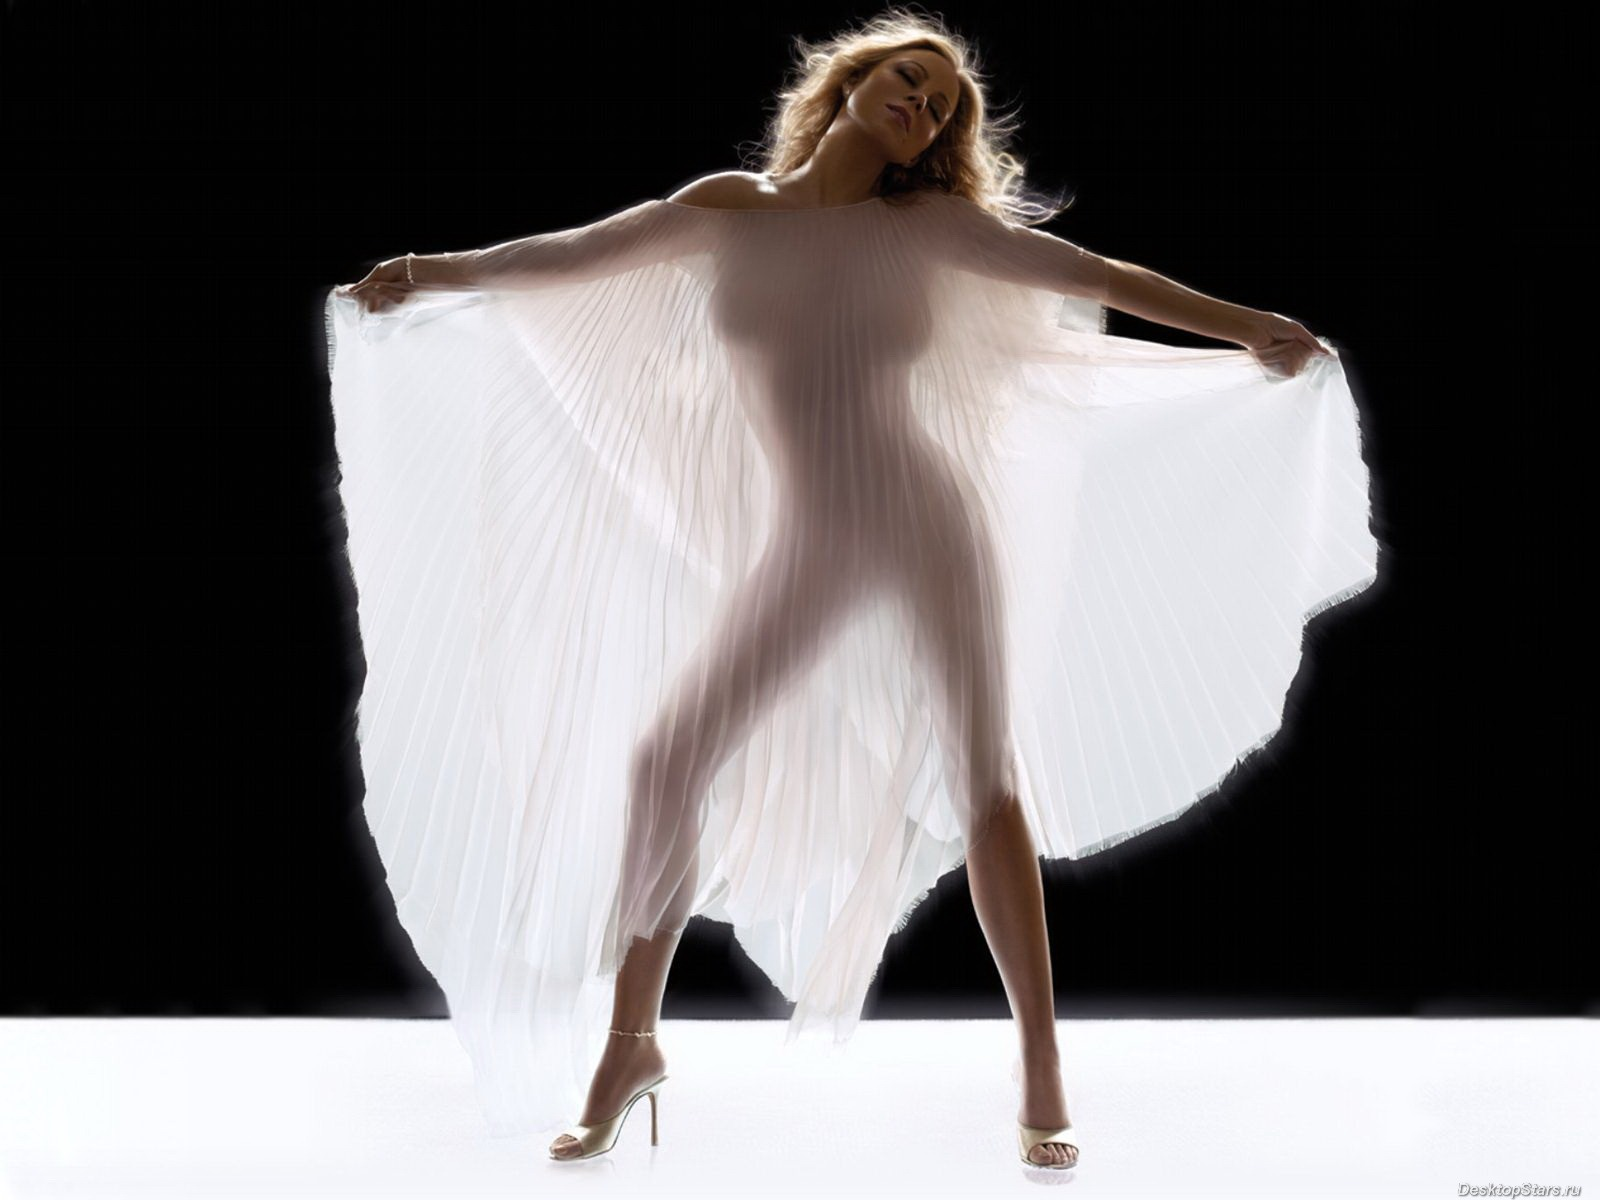 Mariah Carey #002 - 1600x1200 Wallpapers Pictures Photos Images